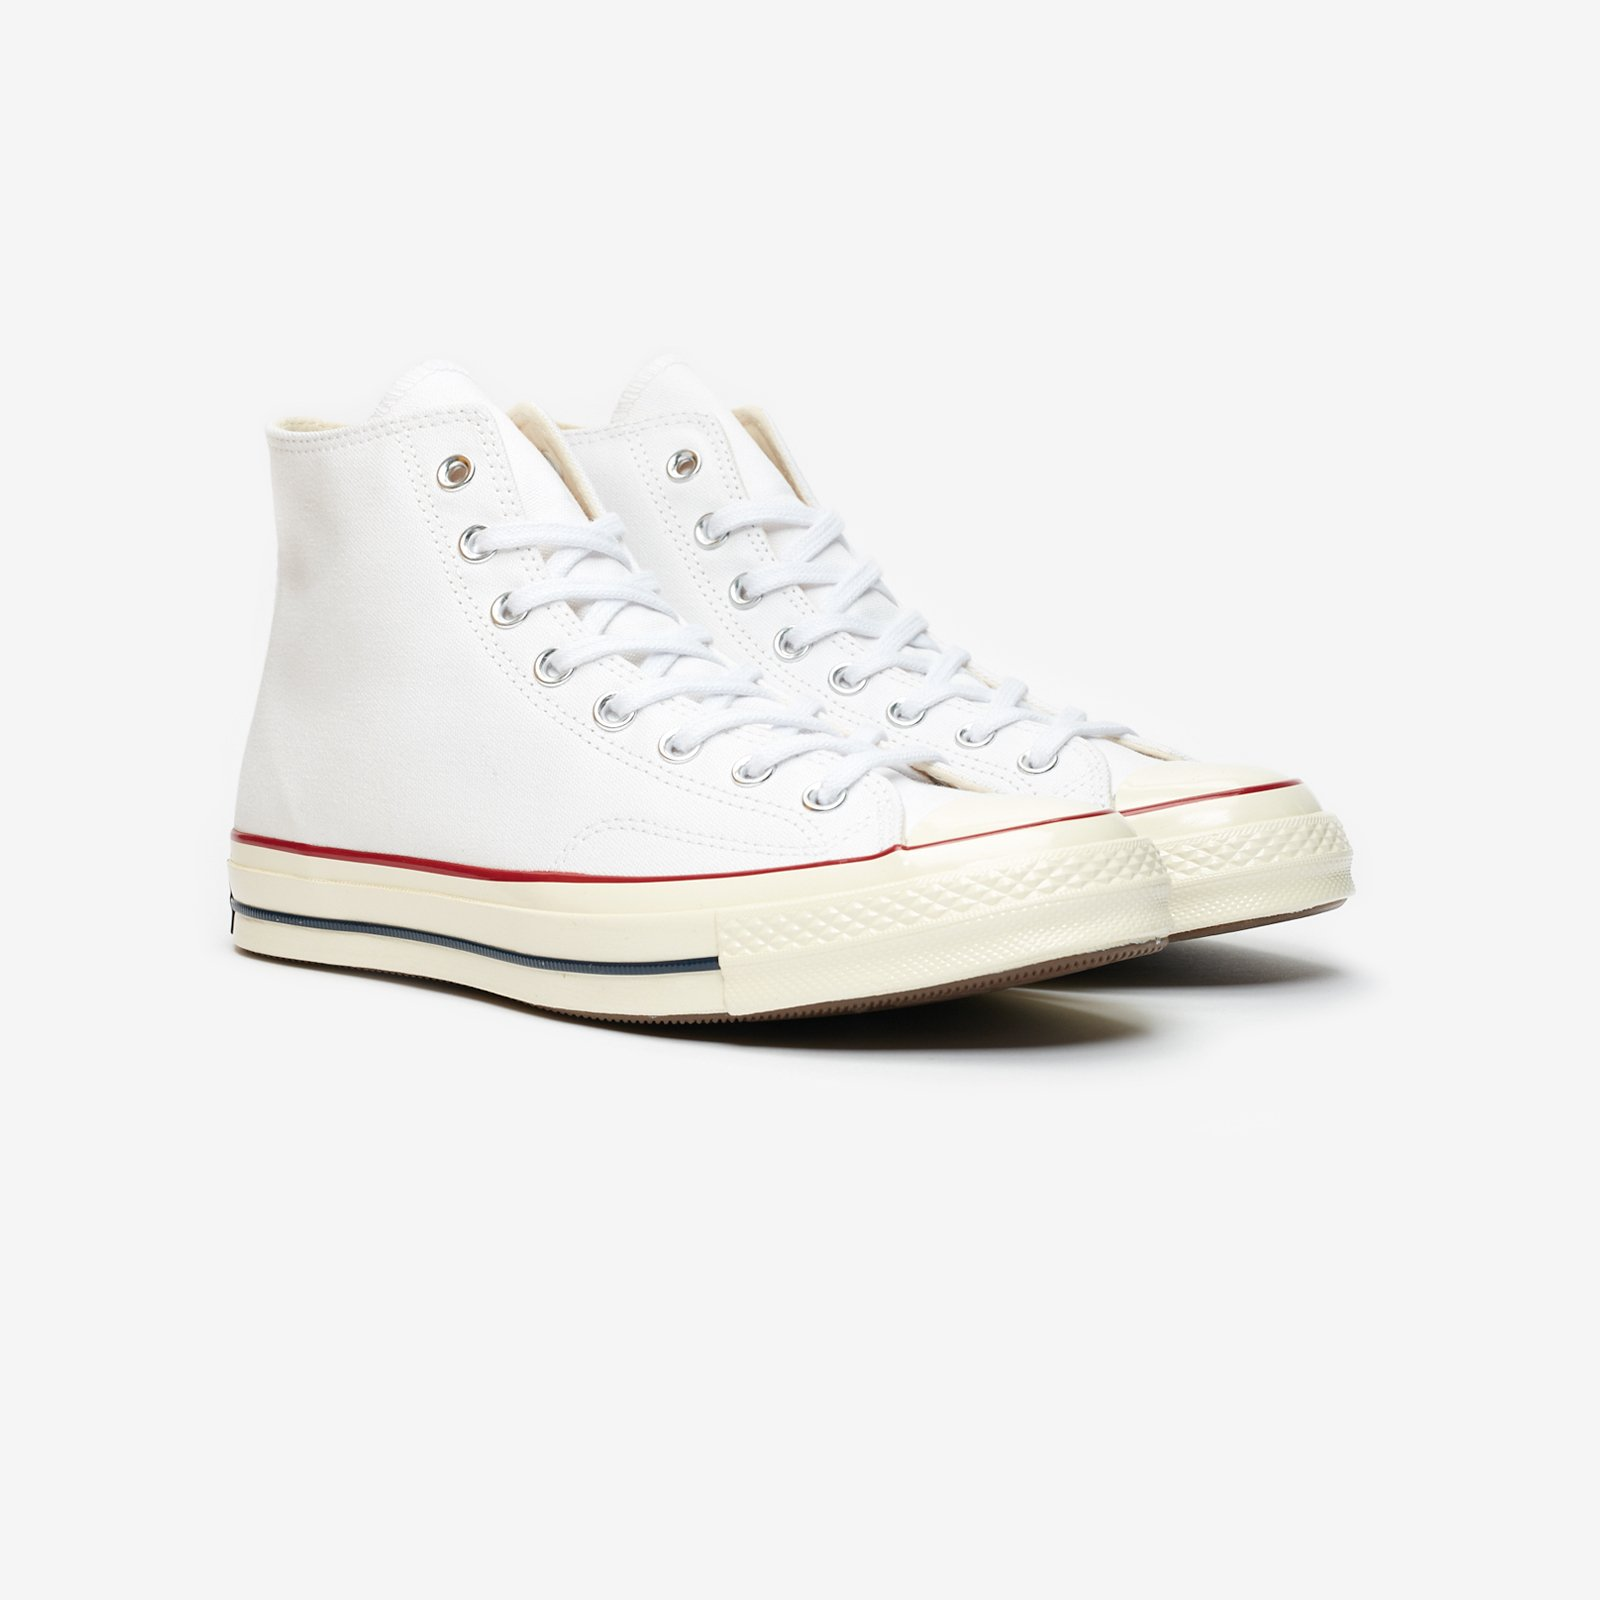 Converse X Undercover Chuck Taylor 70 White Red UK 12 US 12 EUR 46.5 All Star